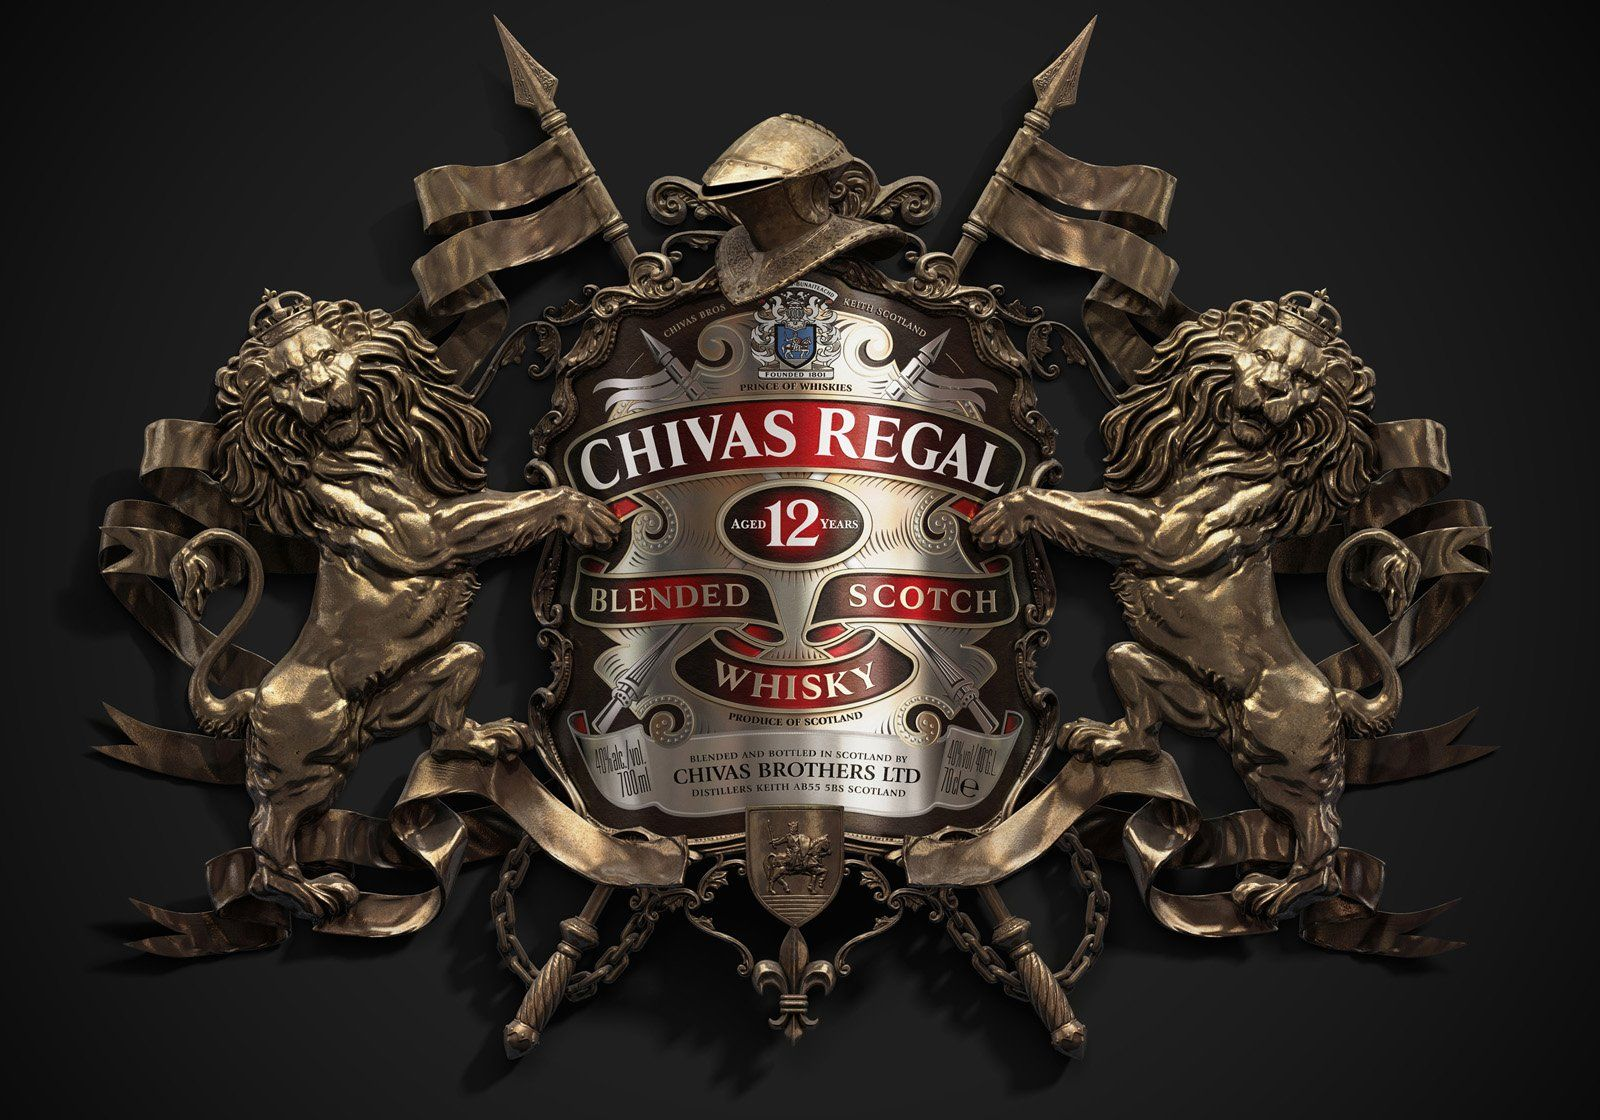 Chivas regal 12 picture logo hd wallpapers for pc desktop background chivas regal 12 picture logo hd wallpapers for pc desktop background voltagebd Images